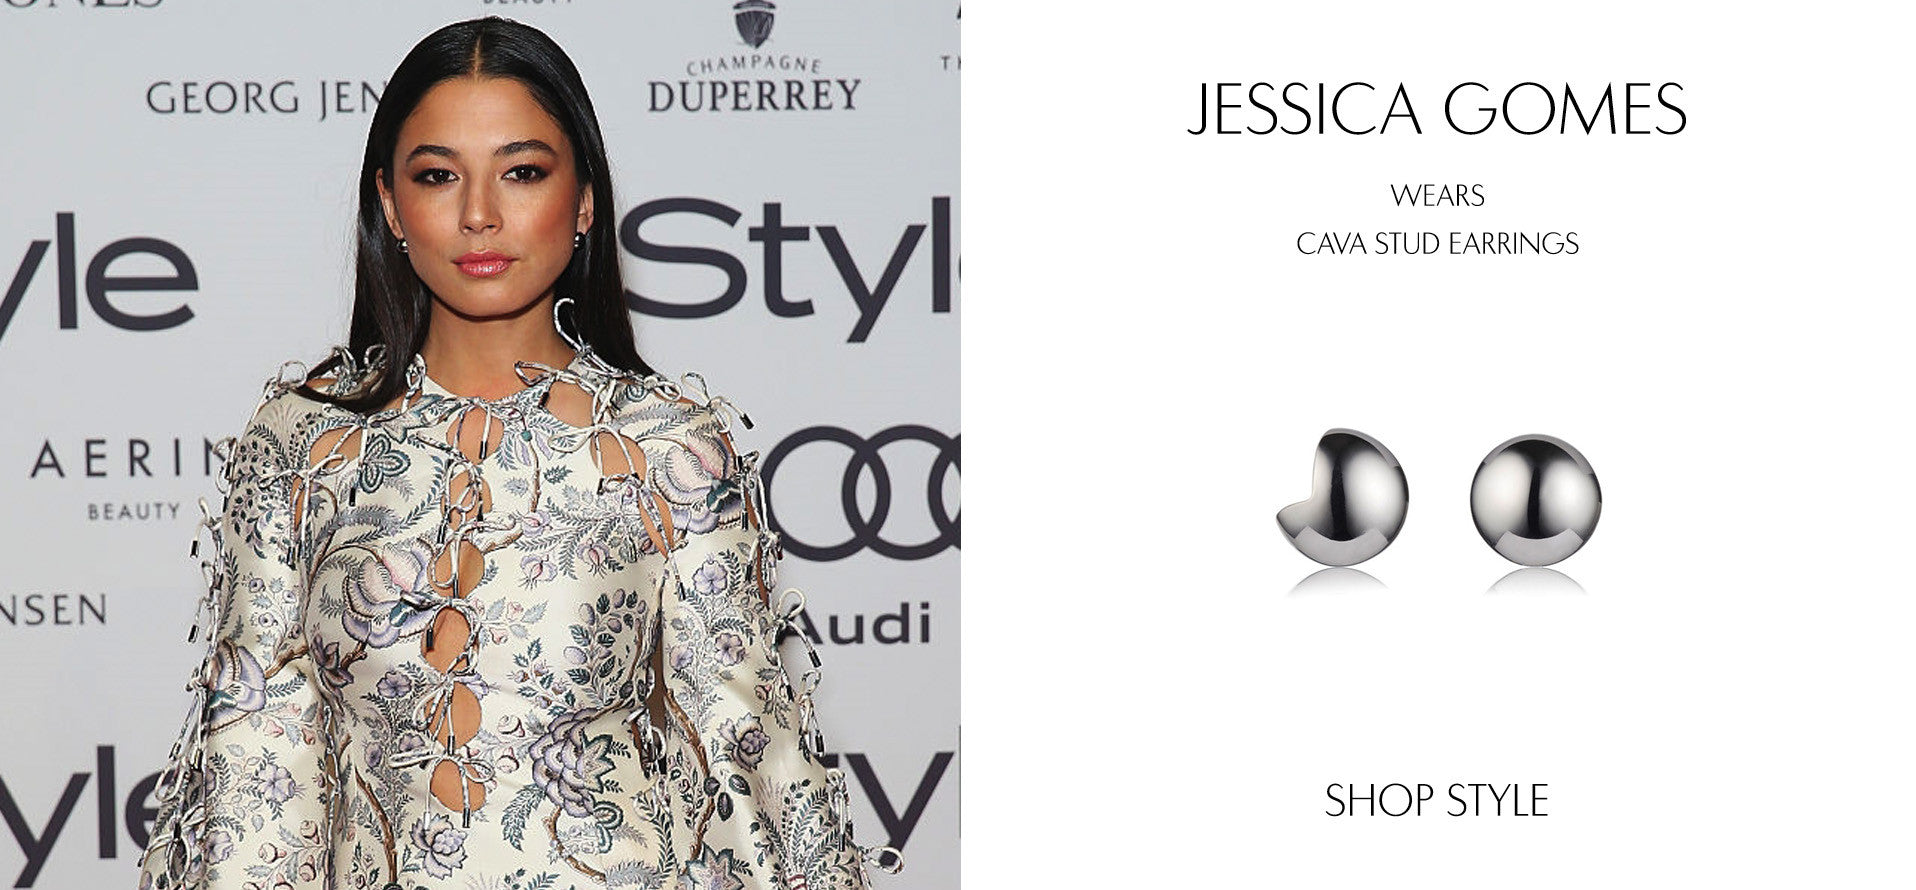 Jessica Gomes at the Instyle Magazine Women in Style Awards 2016 wearing Sarina Suriano Cava stud earrings